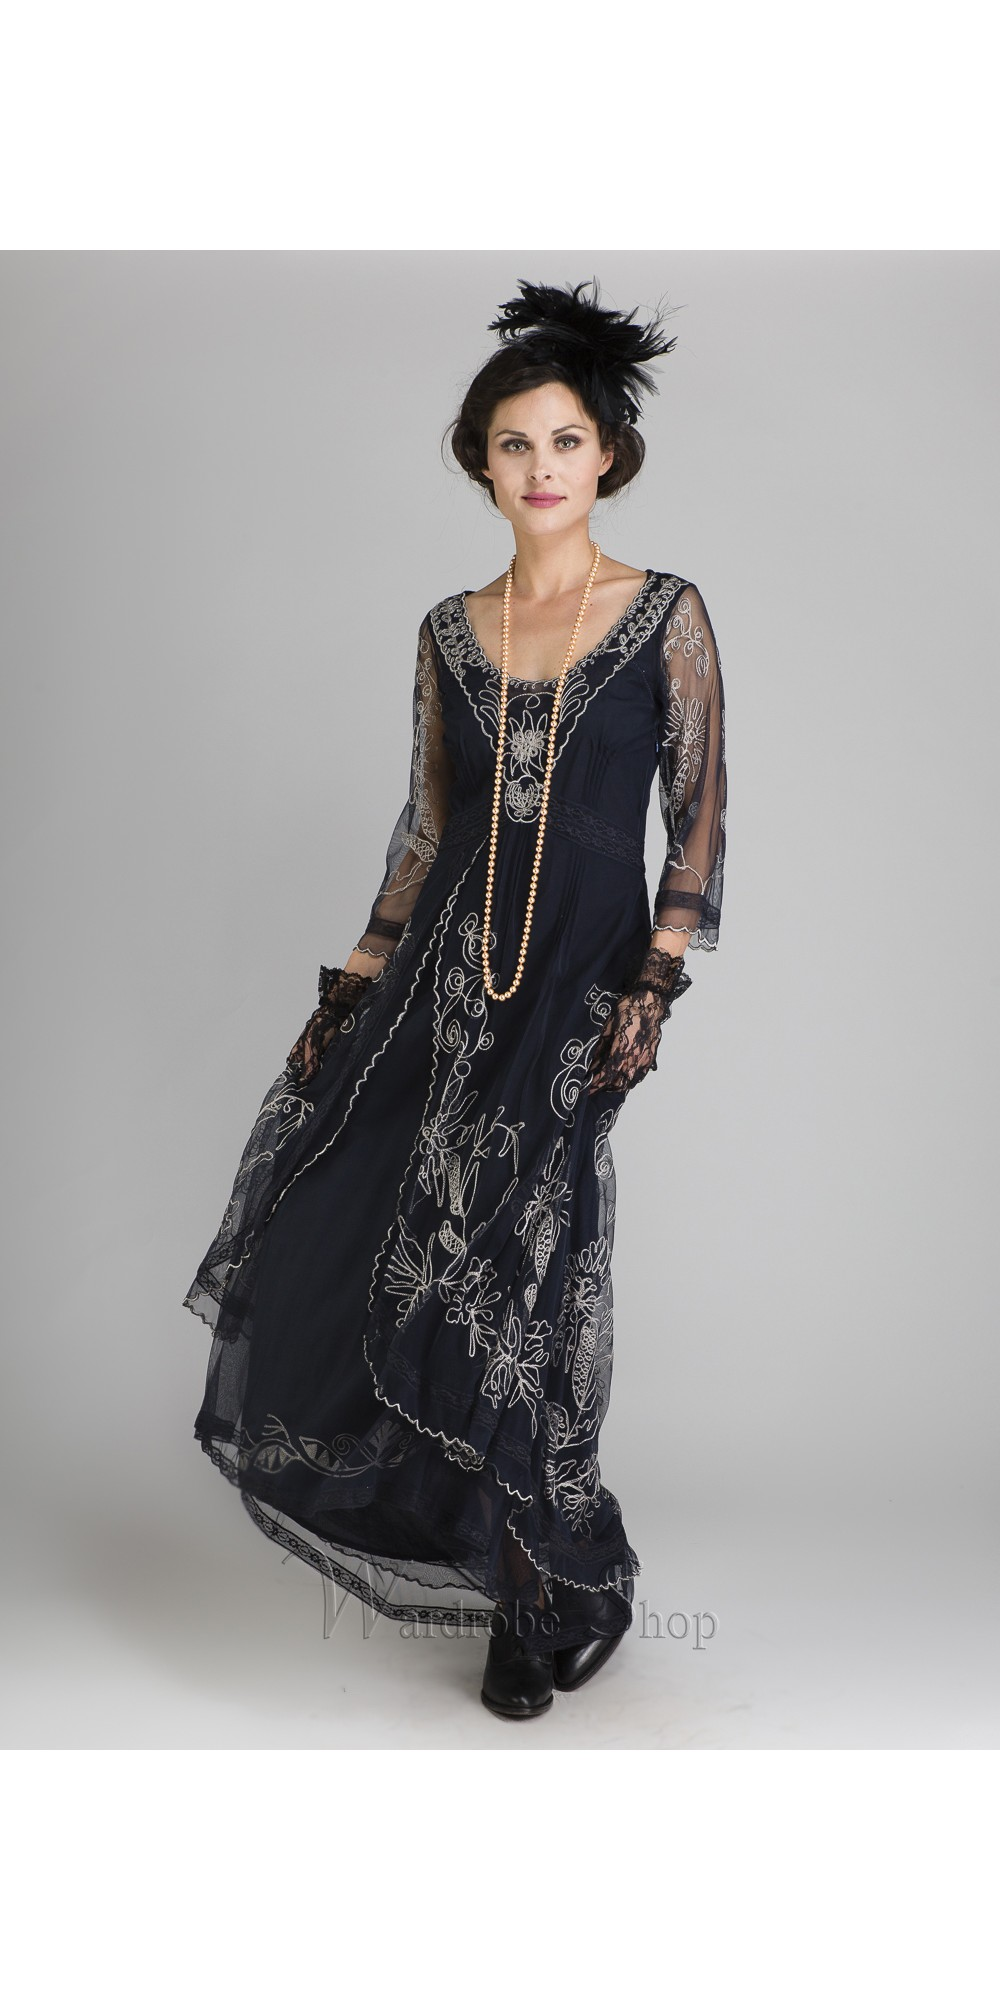 Edwardian Style Clothing Downton Abbey Tea Party Gown in Sapphire by Nataya  $250.00 AT vintagedancer.com